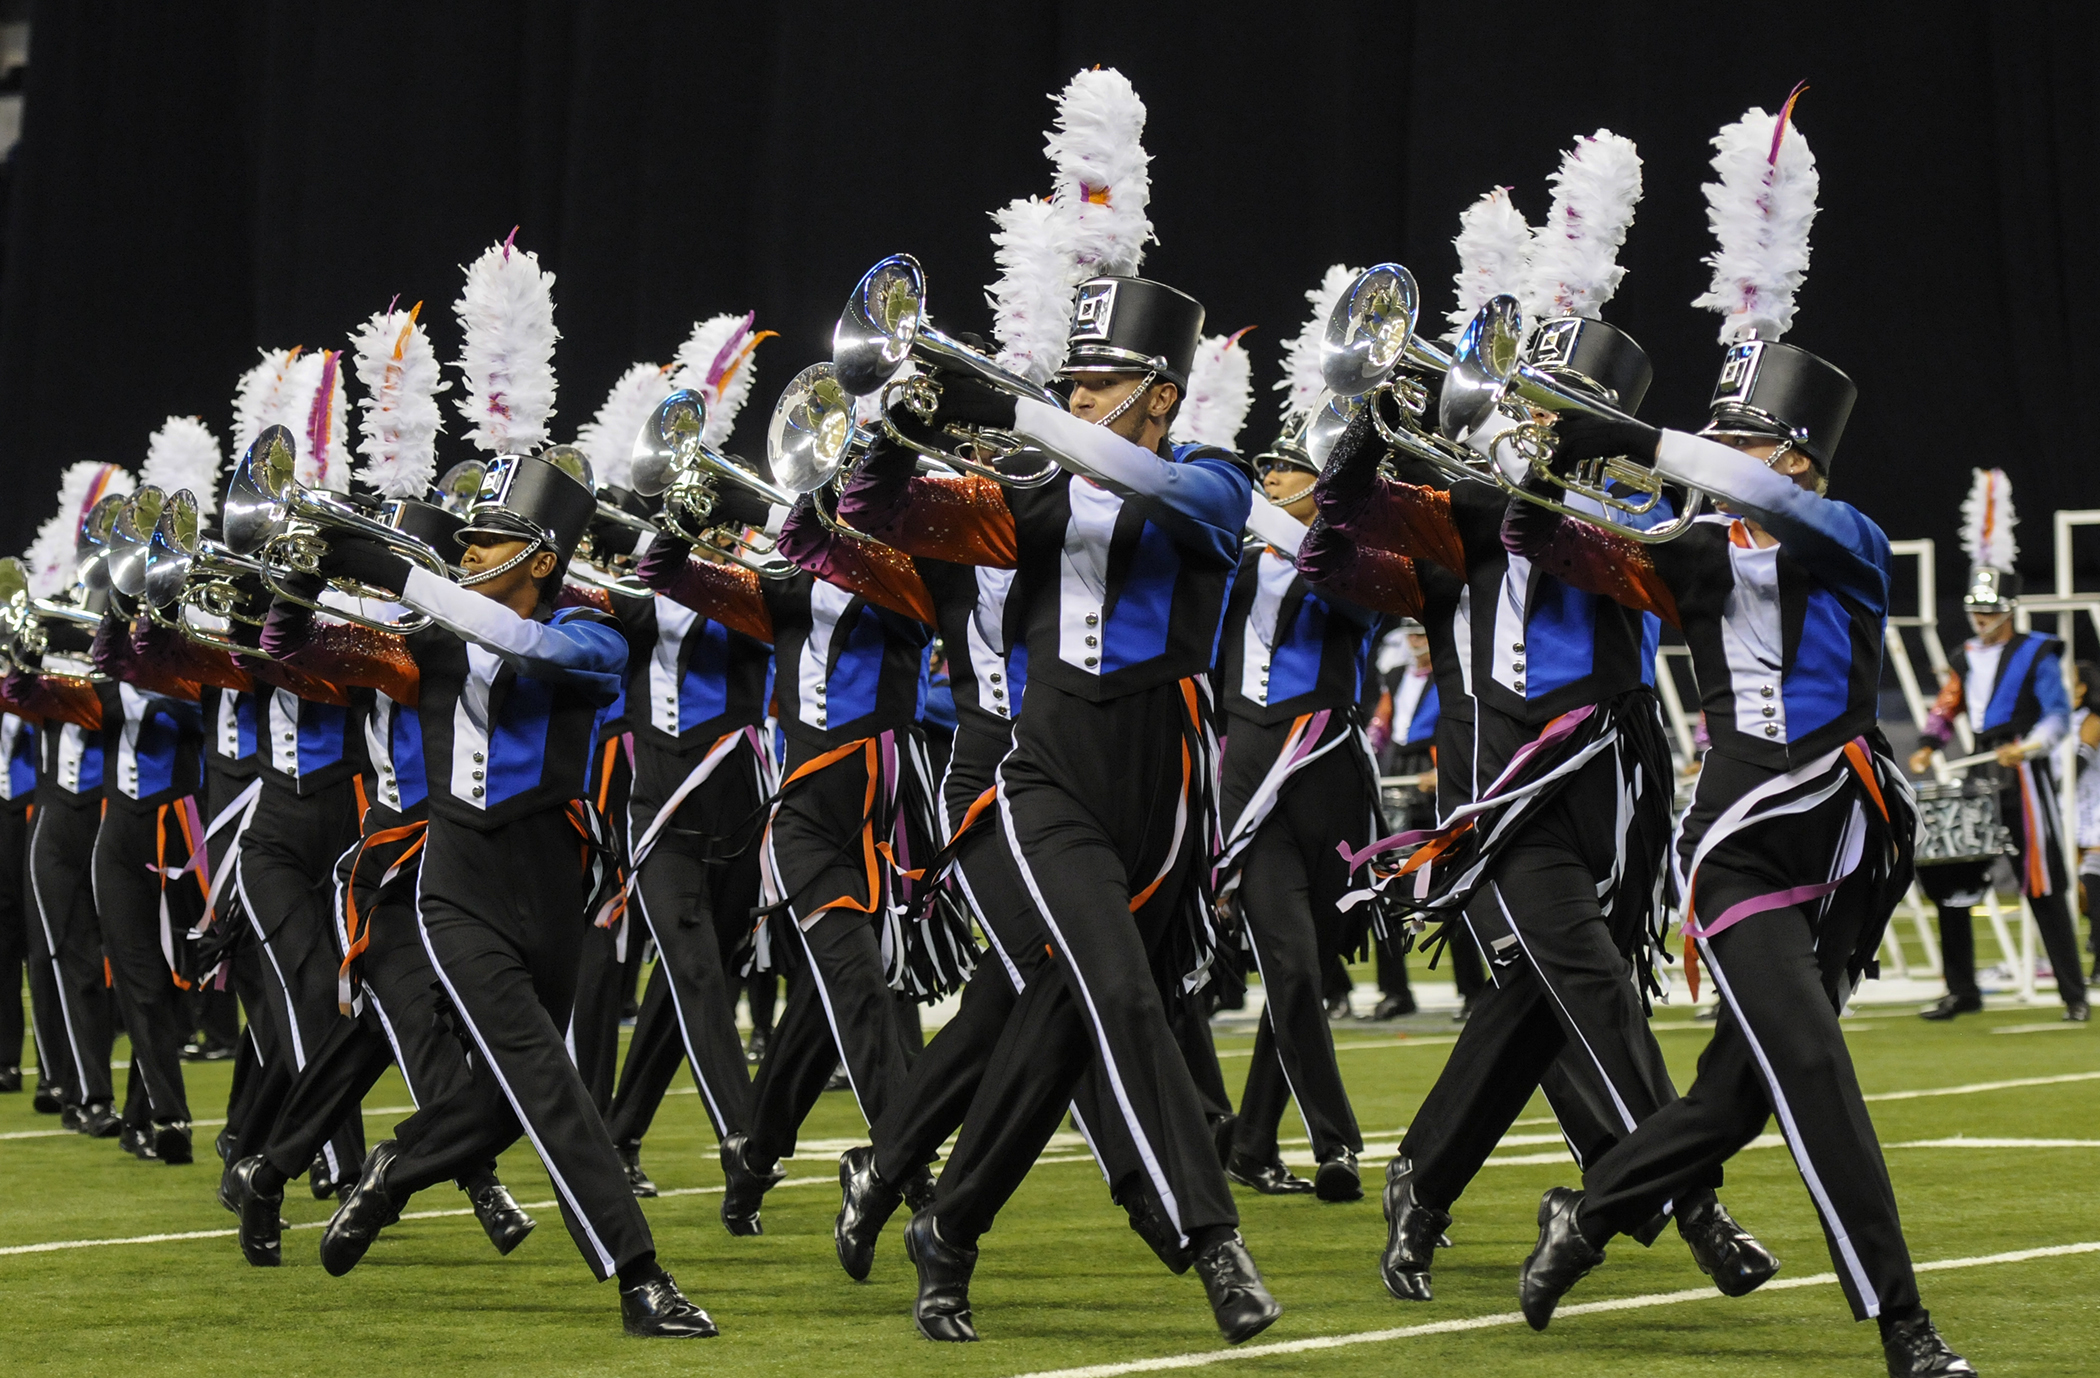 Drum Corps International Shatters Attendance Records Nationwide ...